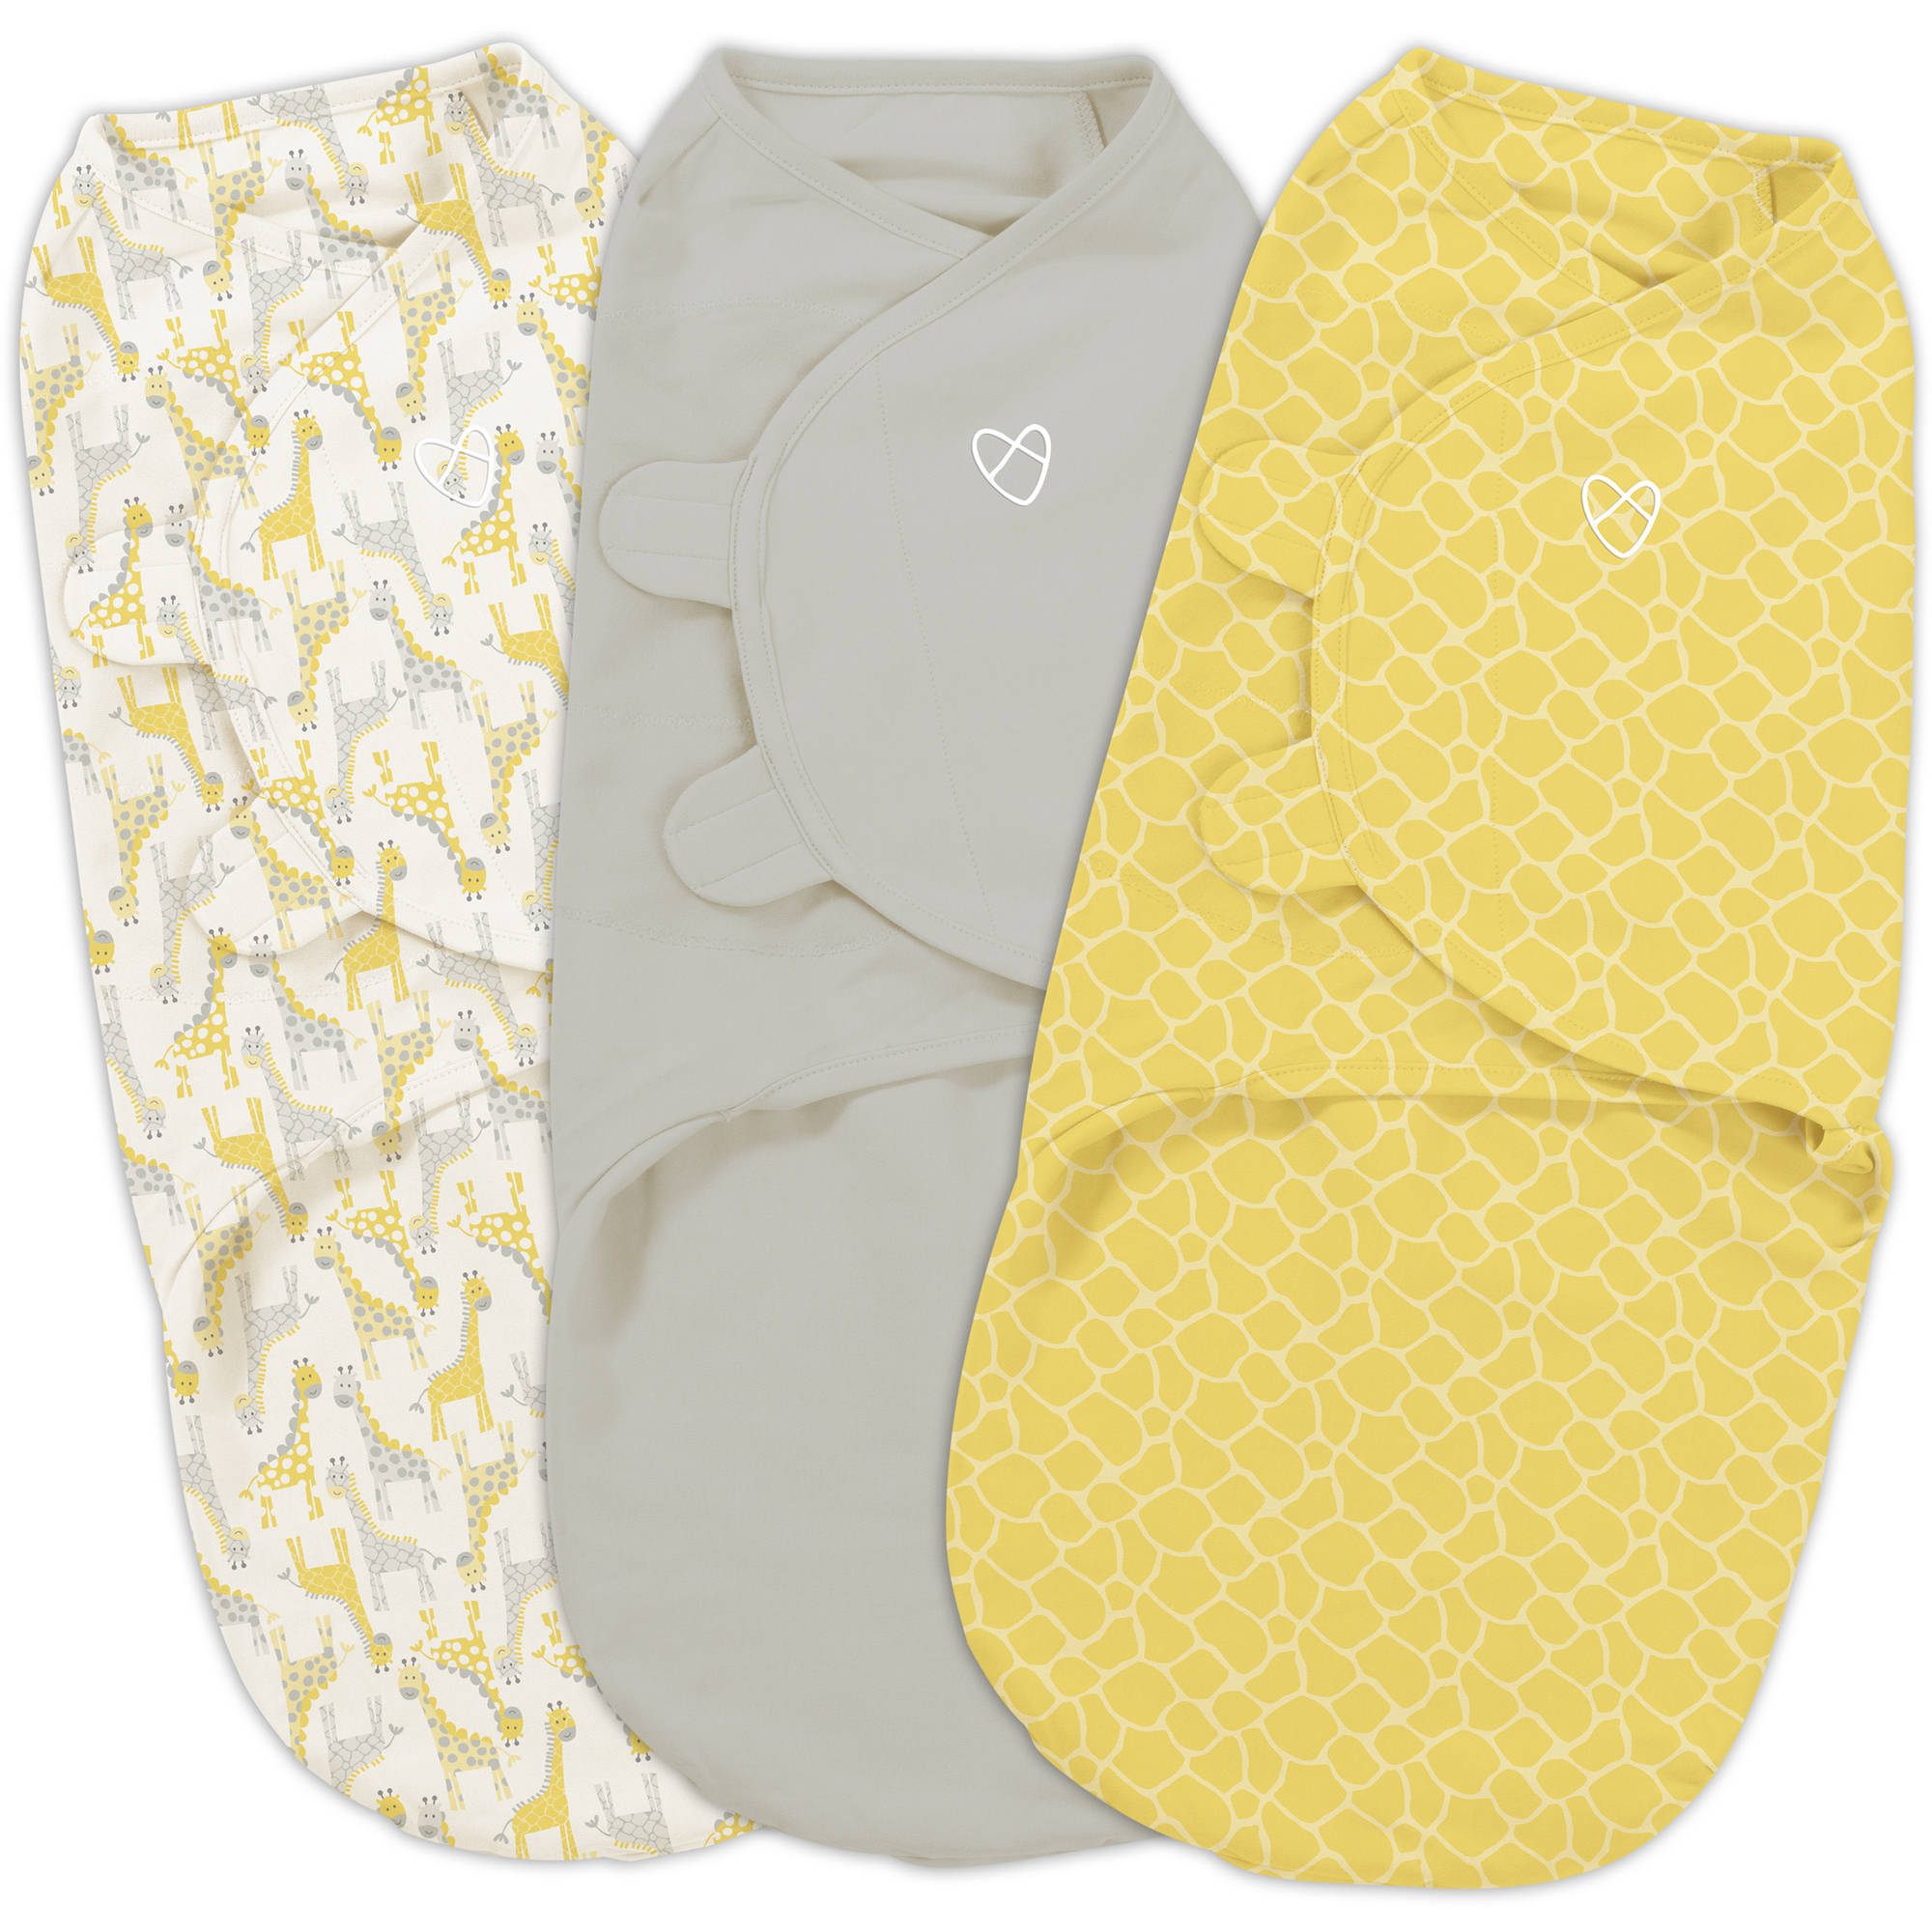 SwaddleMe Original Swaddle, 3-Pack, Grey Yellow Safari, Small